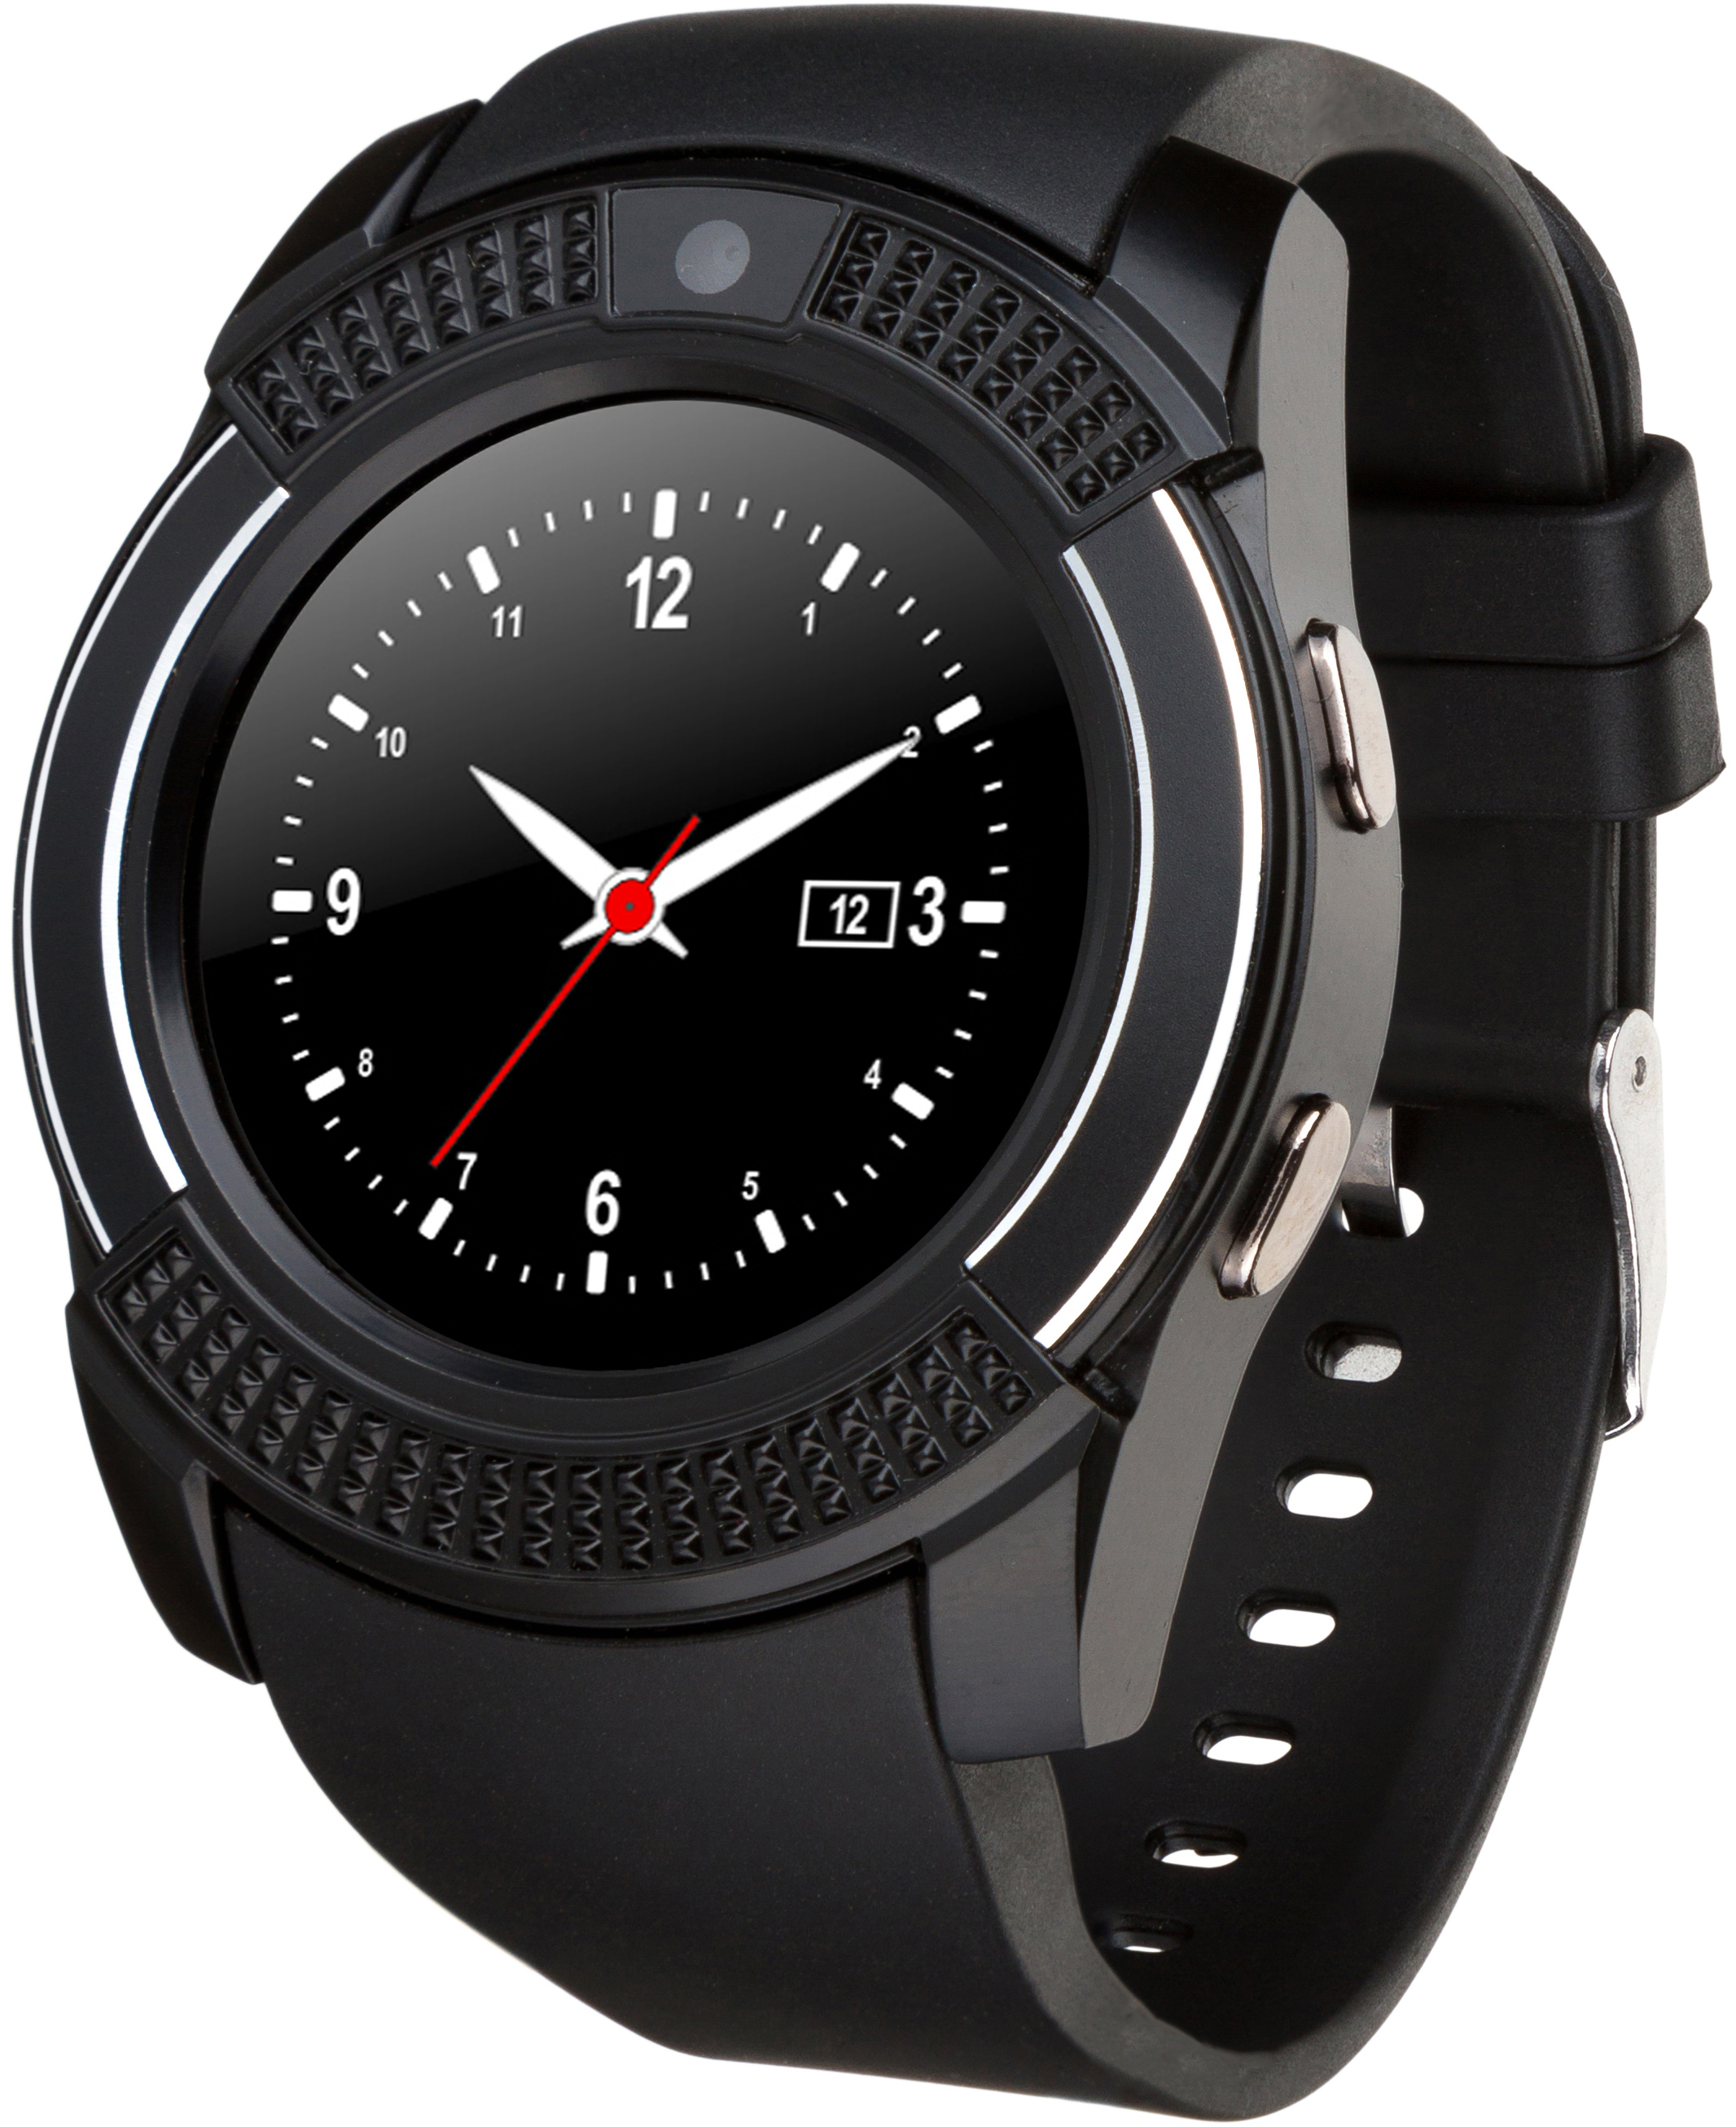 Atrix Smart Watch B2 IPS Black 9a16aae1cb1df